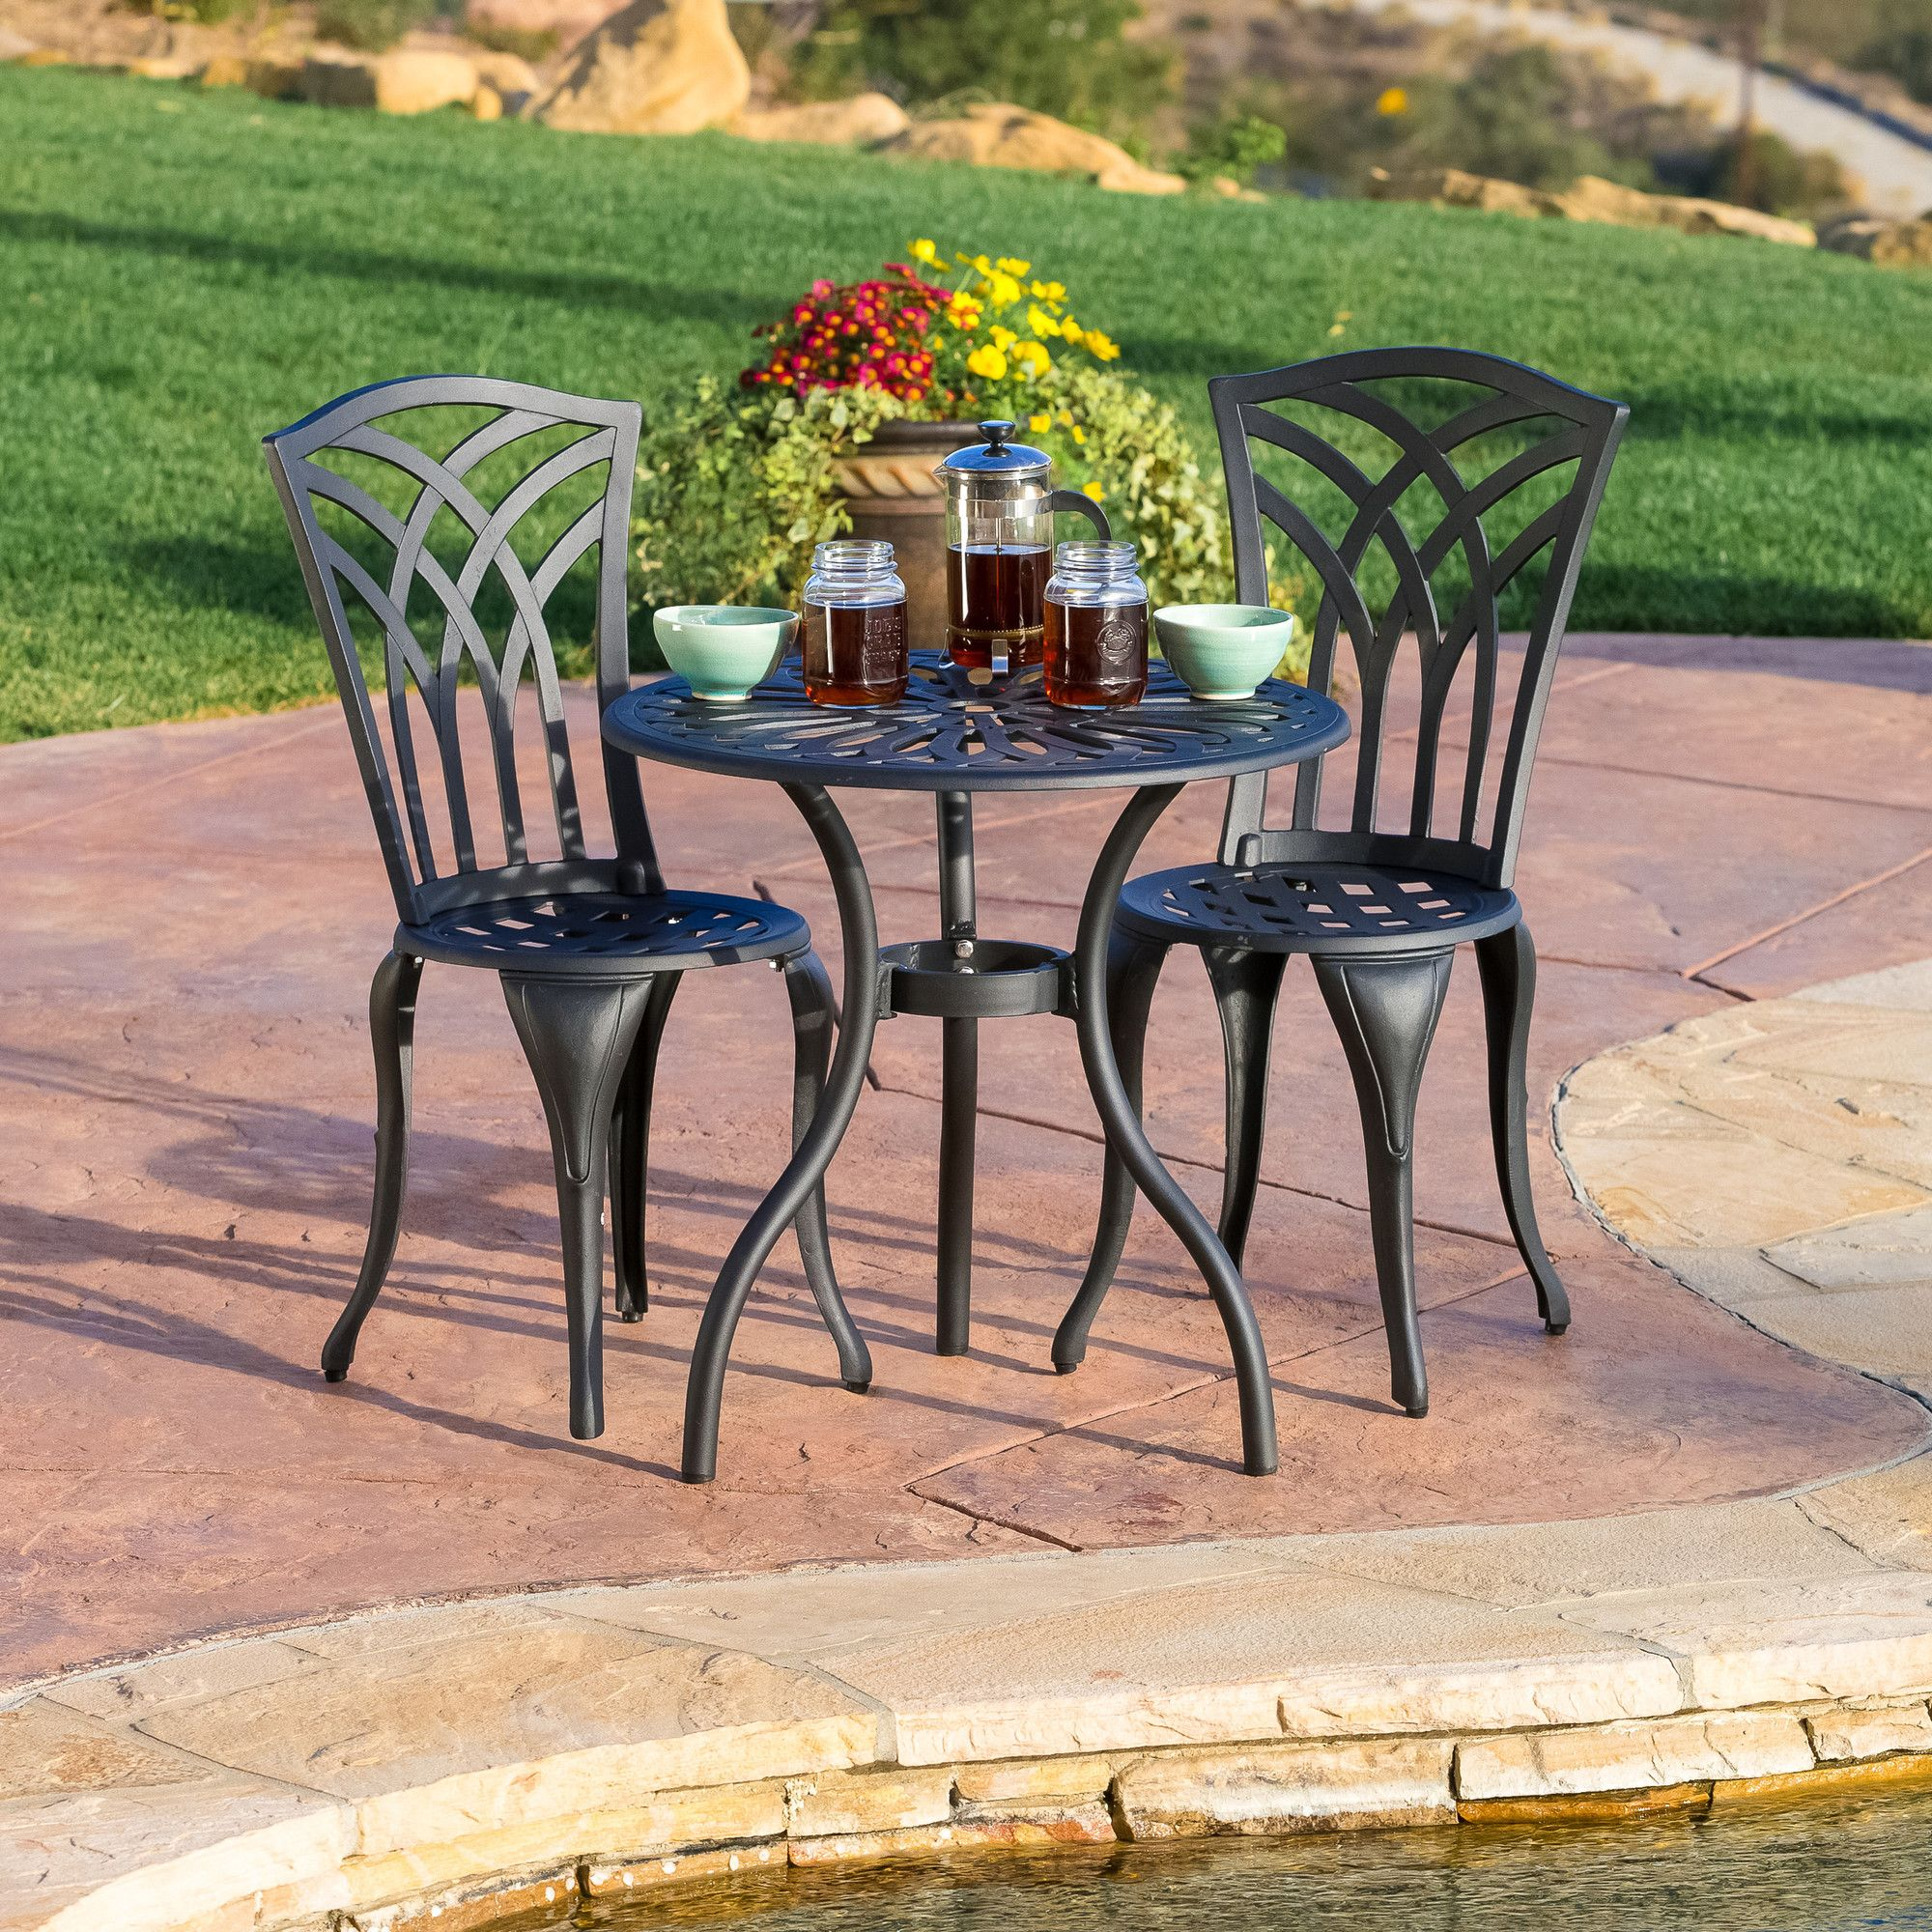 Features:  -Set includes 2 armless chairs and 1 round mesh table.  -Material: Cast aluminum.  -Intricate detail on backrest and table-top.  Product Type: -Bistro set.  Inner Frame Material: -Aluminum.